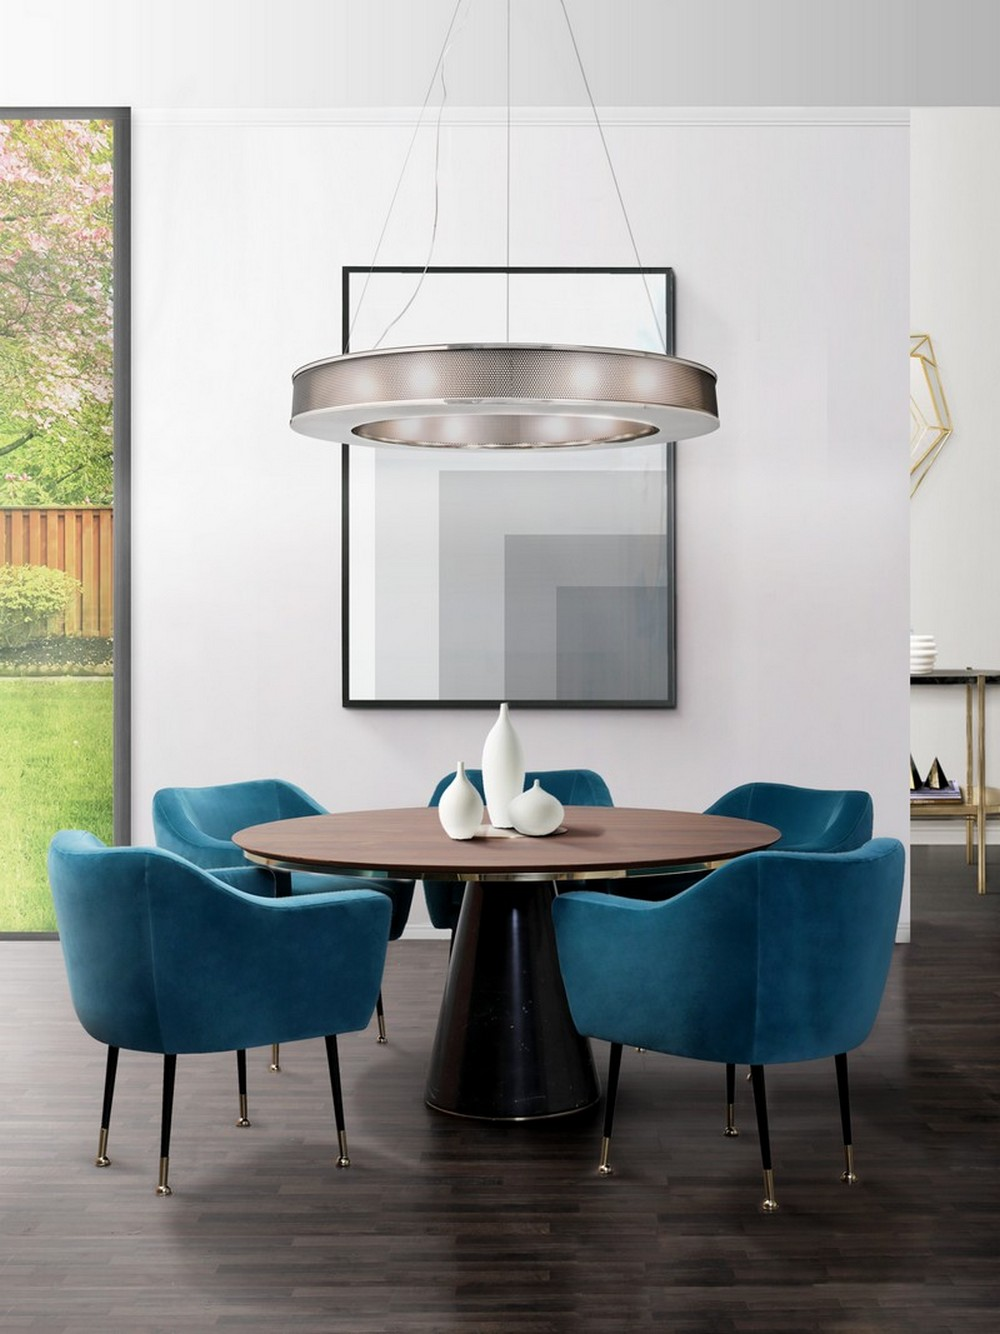 Between Classic and Modern: Mid-century Dining Tables You Will Love mid-century dining tables Between Classic and Modern: Mid-century Dining Tables You Will Love betoiaaa 1